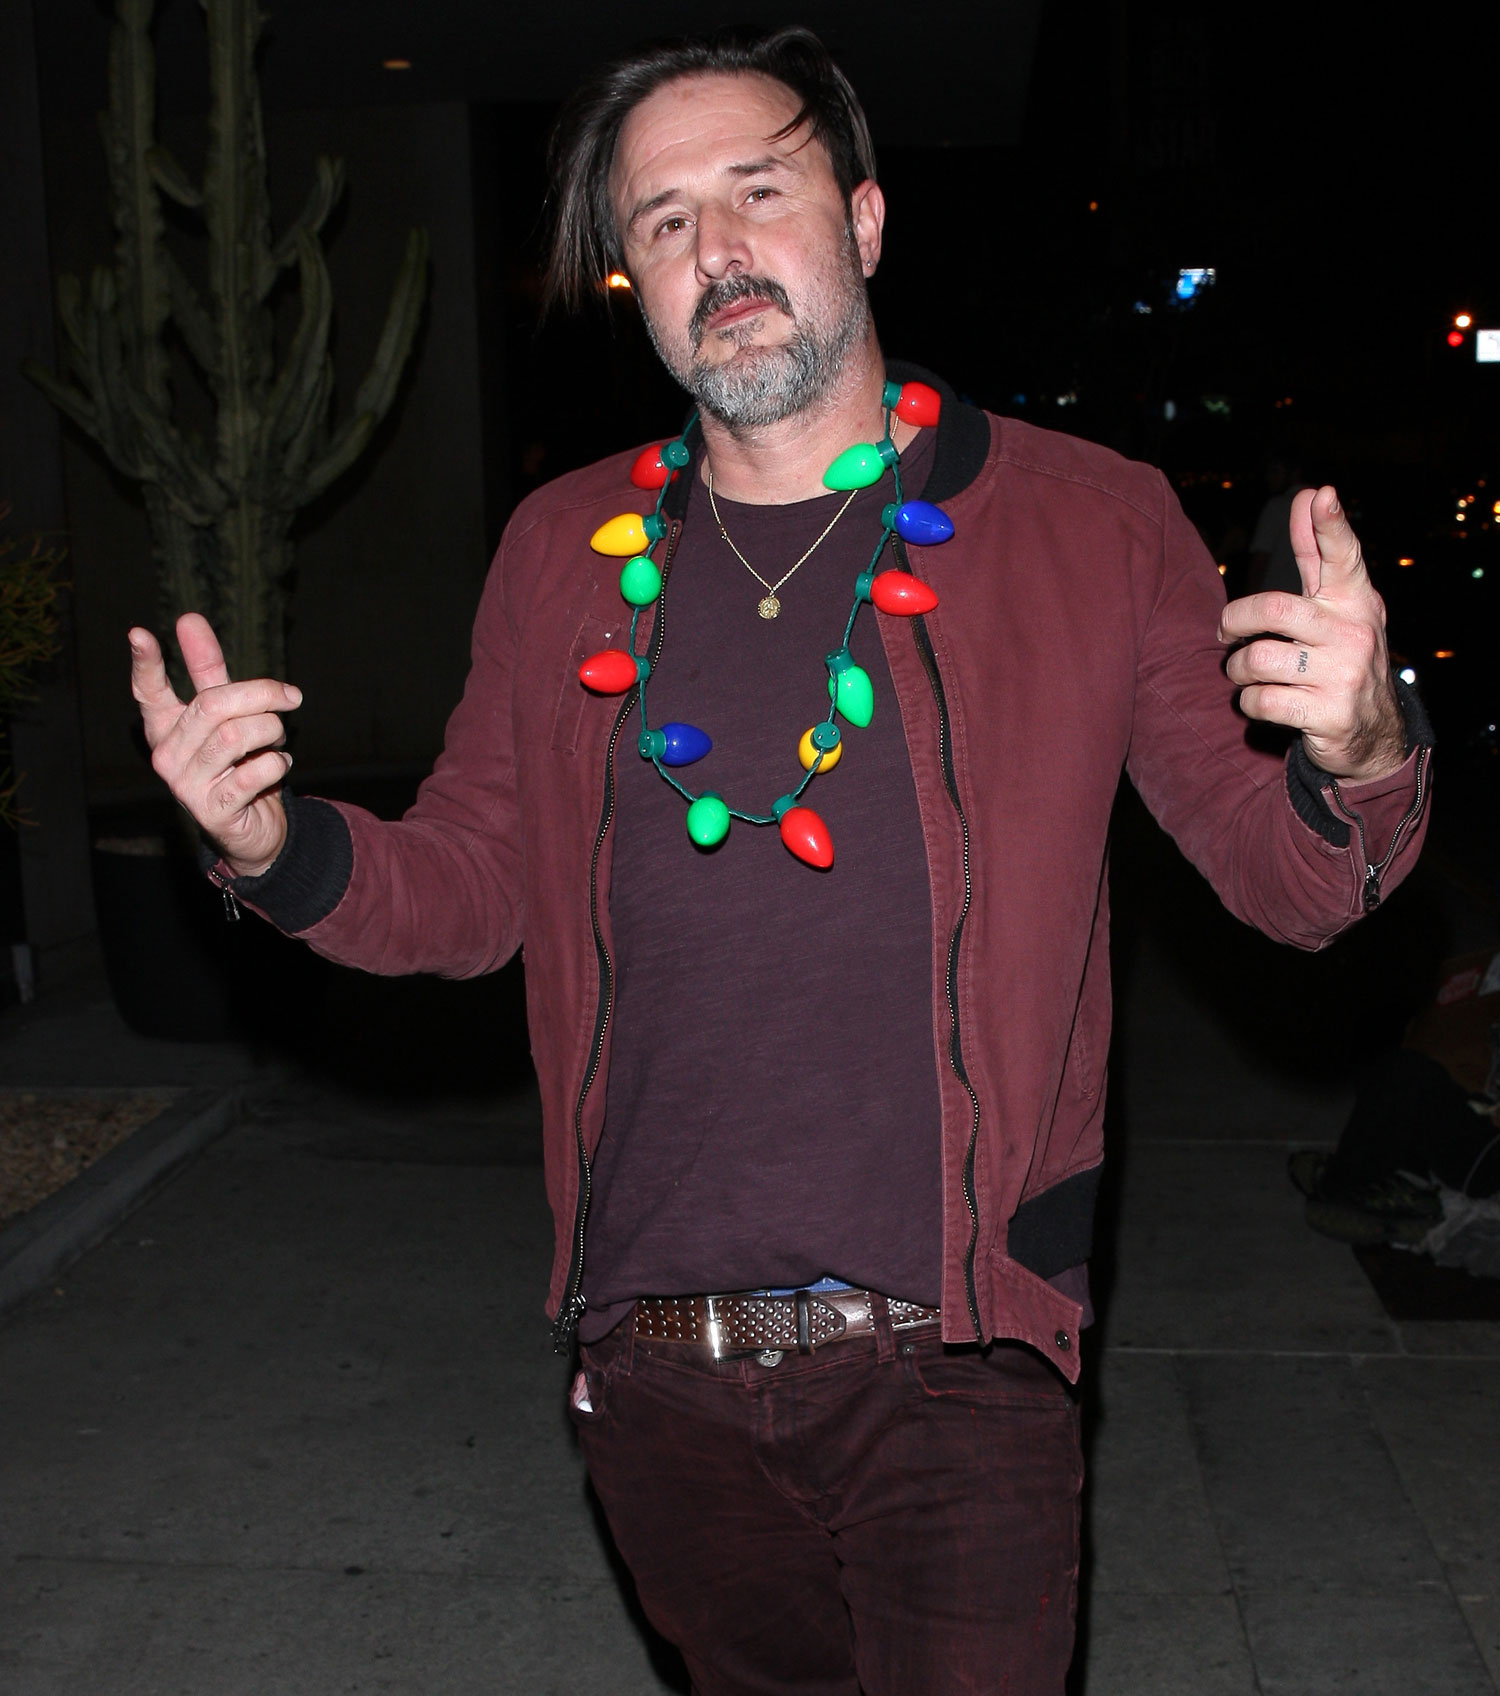 EXCLUSIVE: David Arquette gets in the holiday spirit by wearing a Christmas light necklace after leaving Bootsy Bellows night club